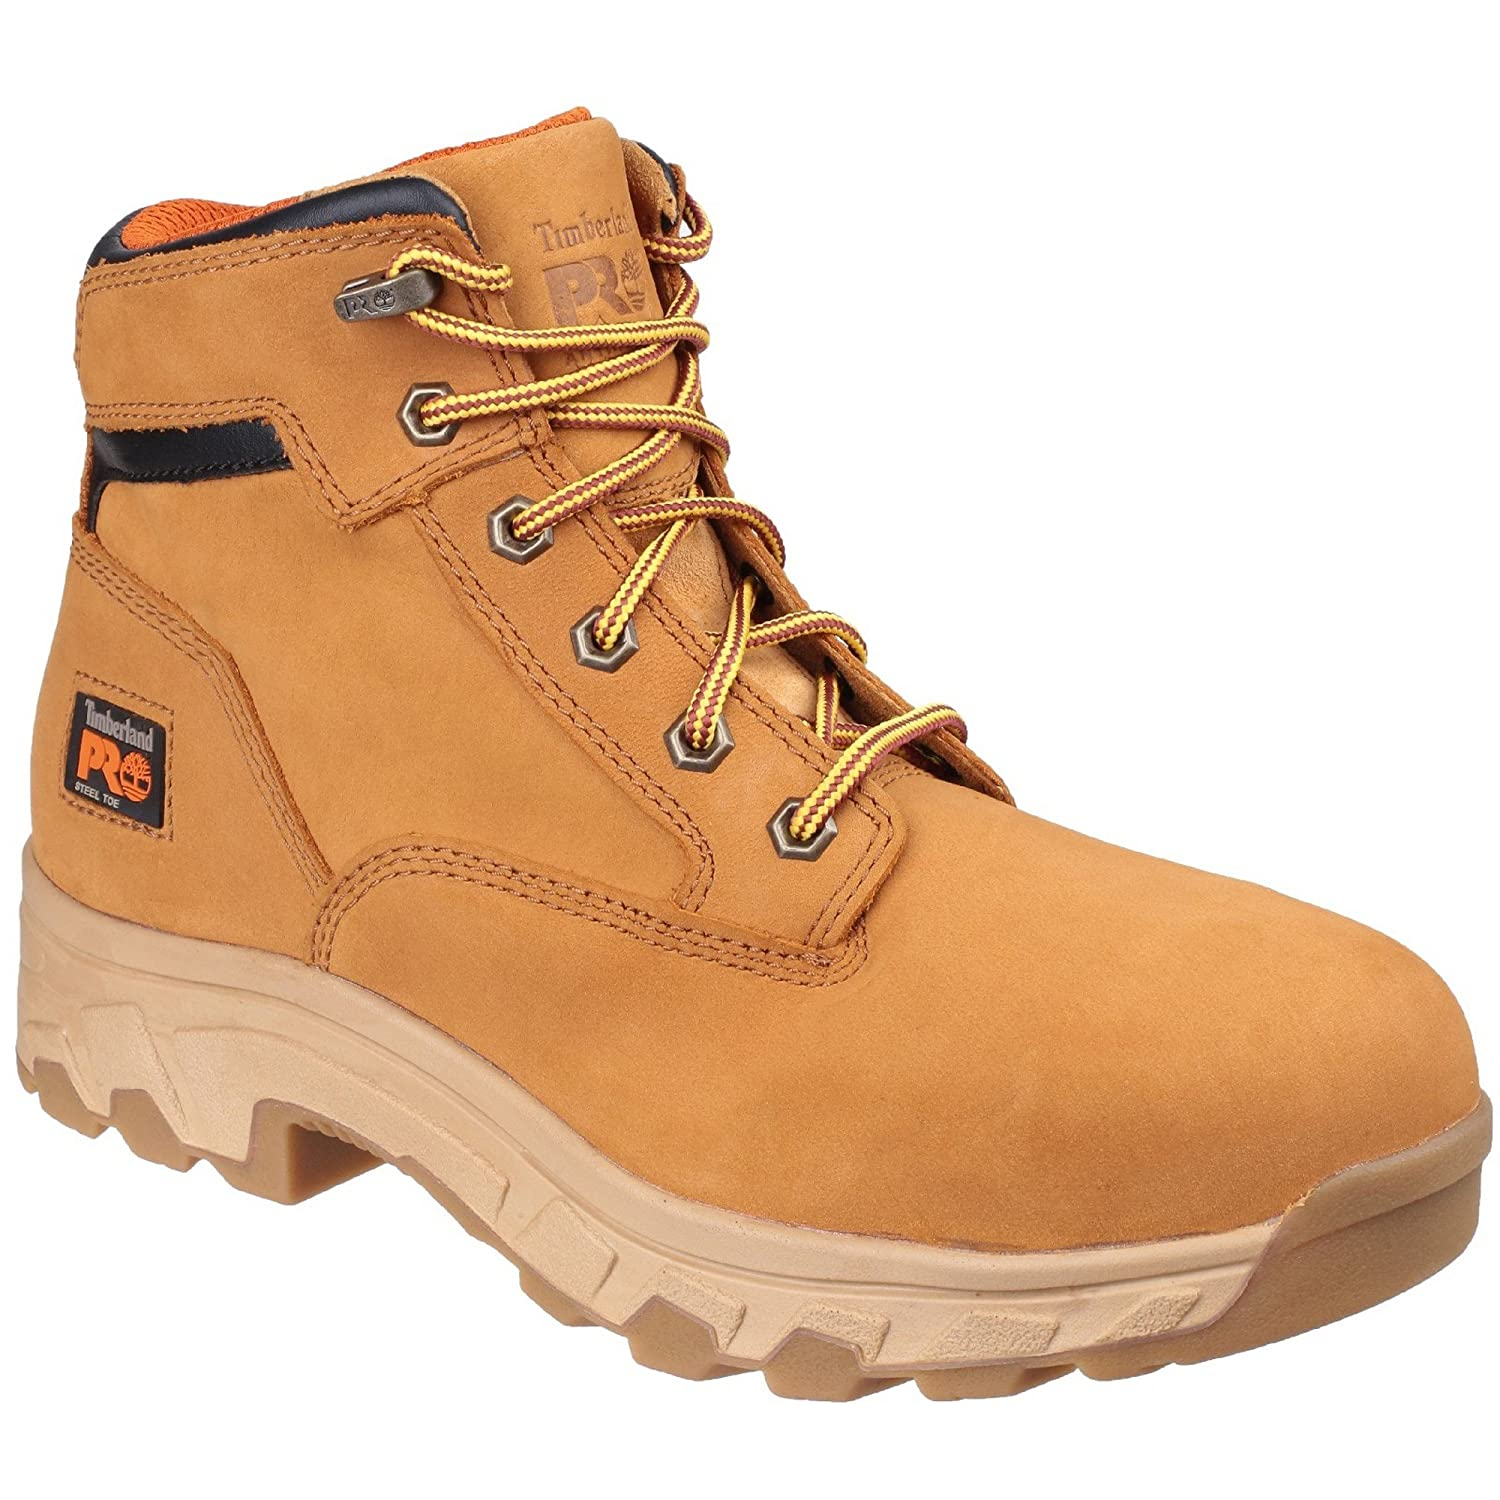 3ba65a11606 Timberland Pro Mens Workstead Lace up Safety Boot